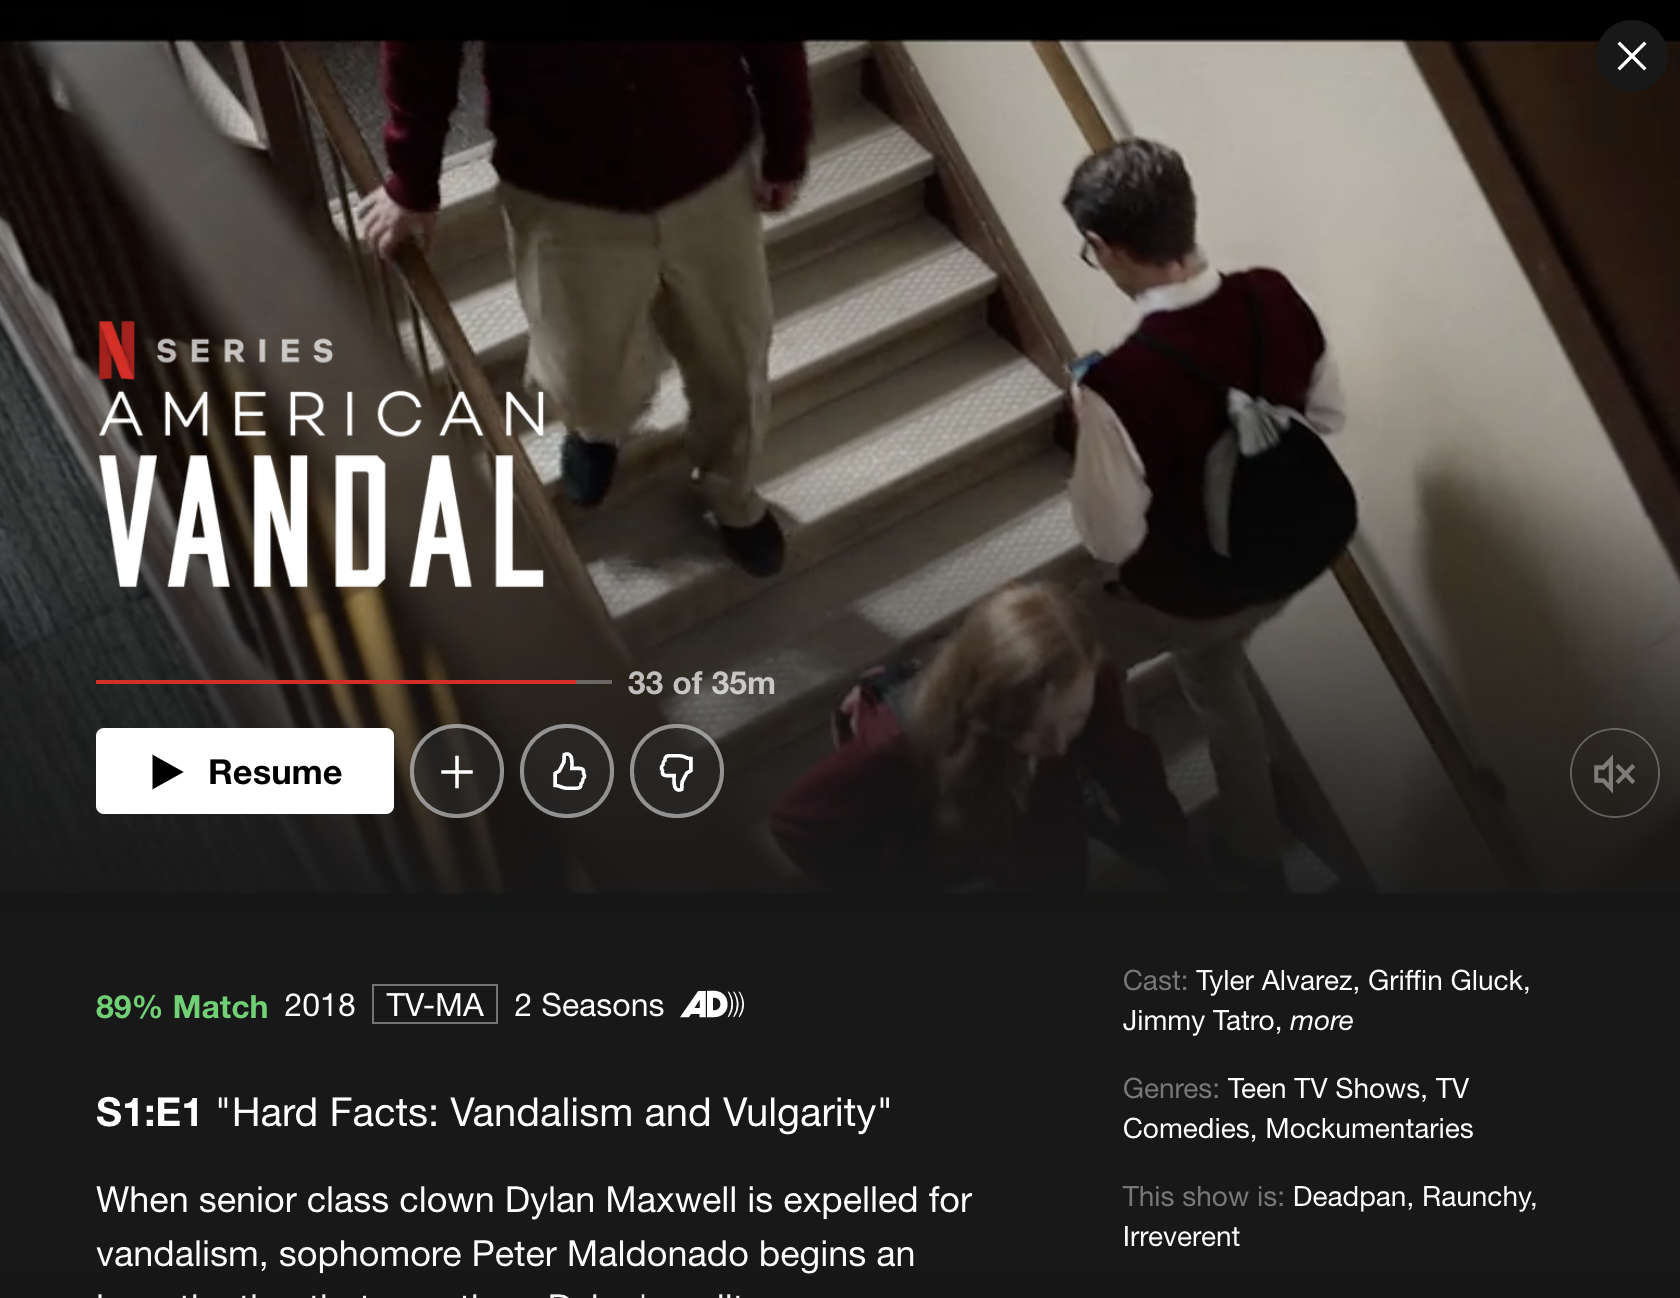 Series page for Netflix' American Vandal